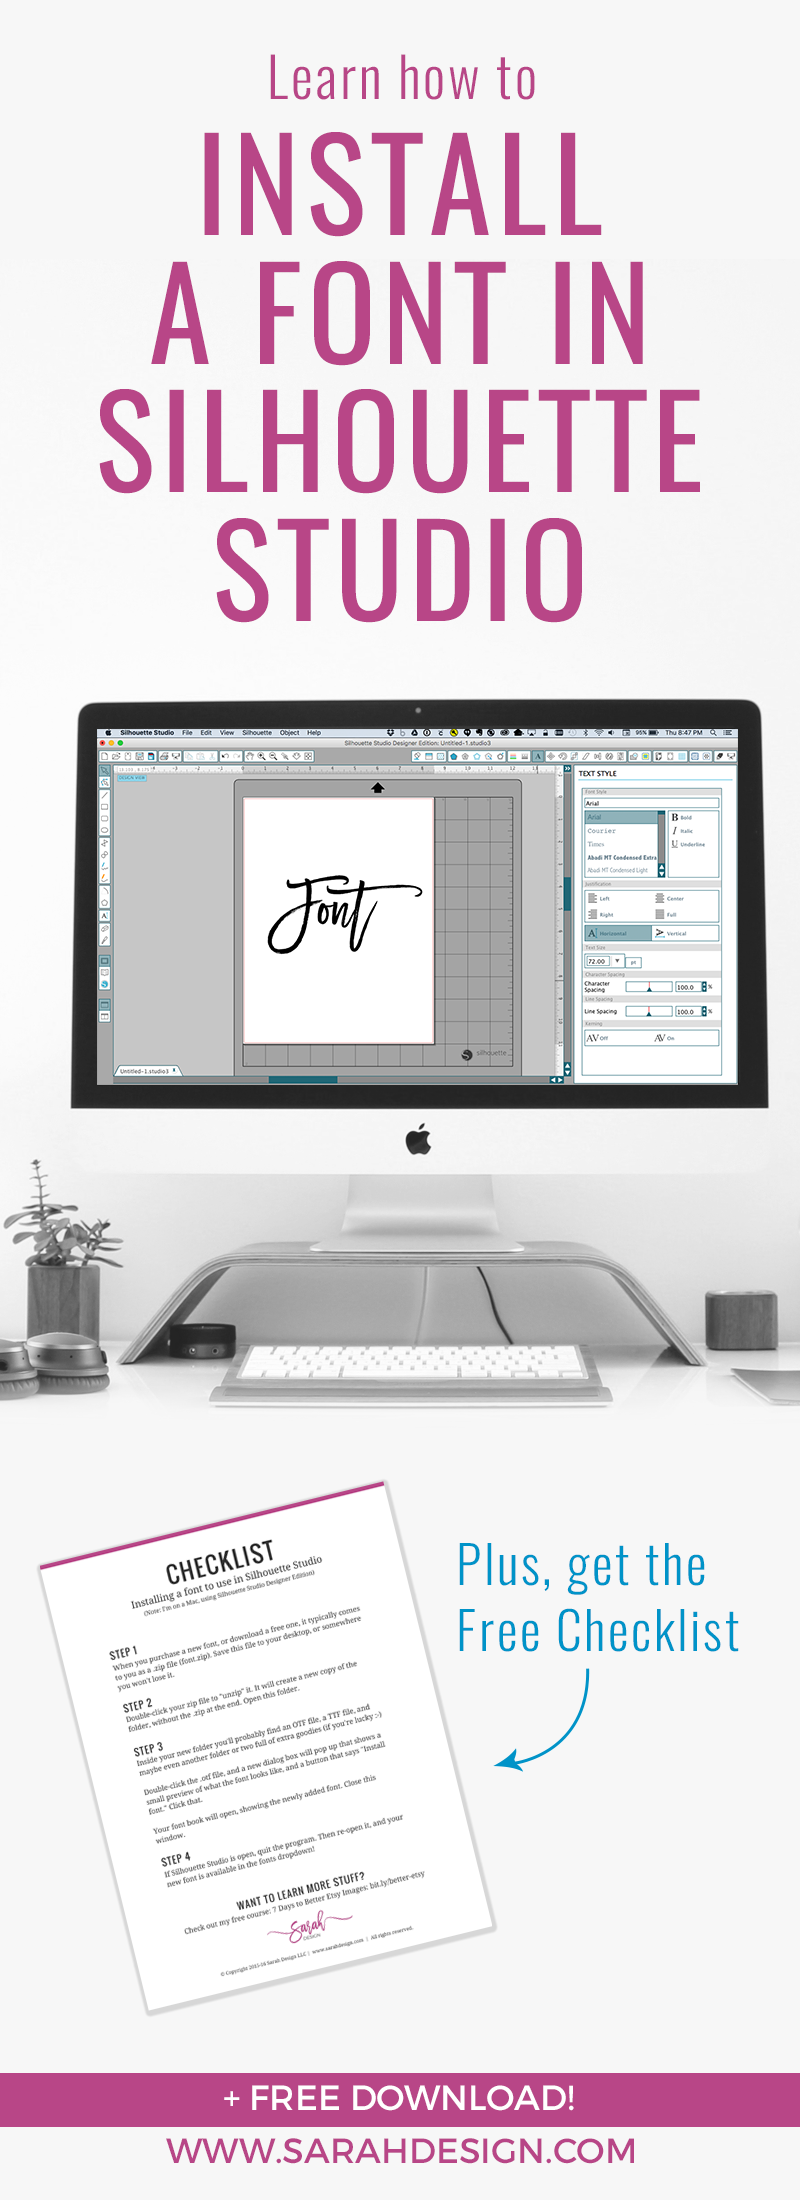 Finally a way to get your fonts to show up in Sil Studio! It's actually way easier than you think. Read on for all the details - Plus a free checklist download!